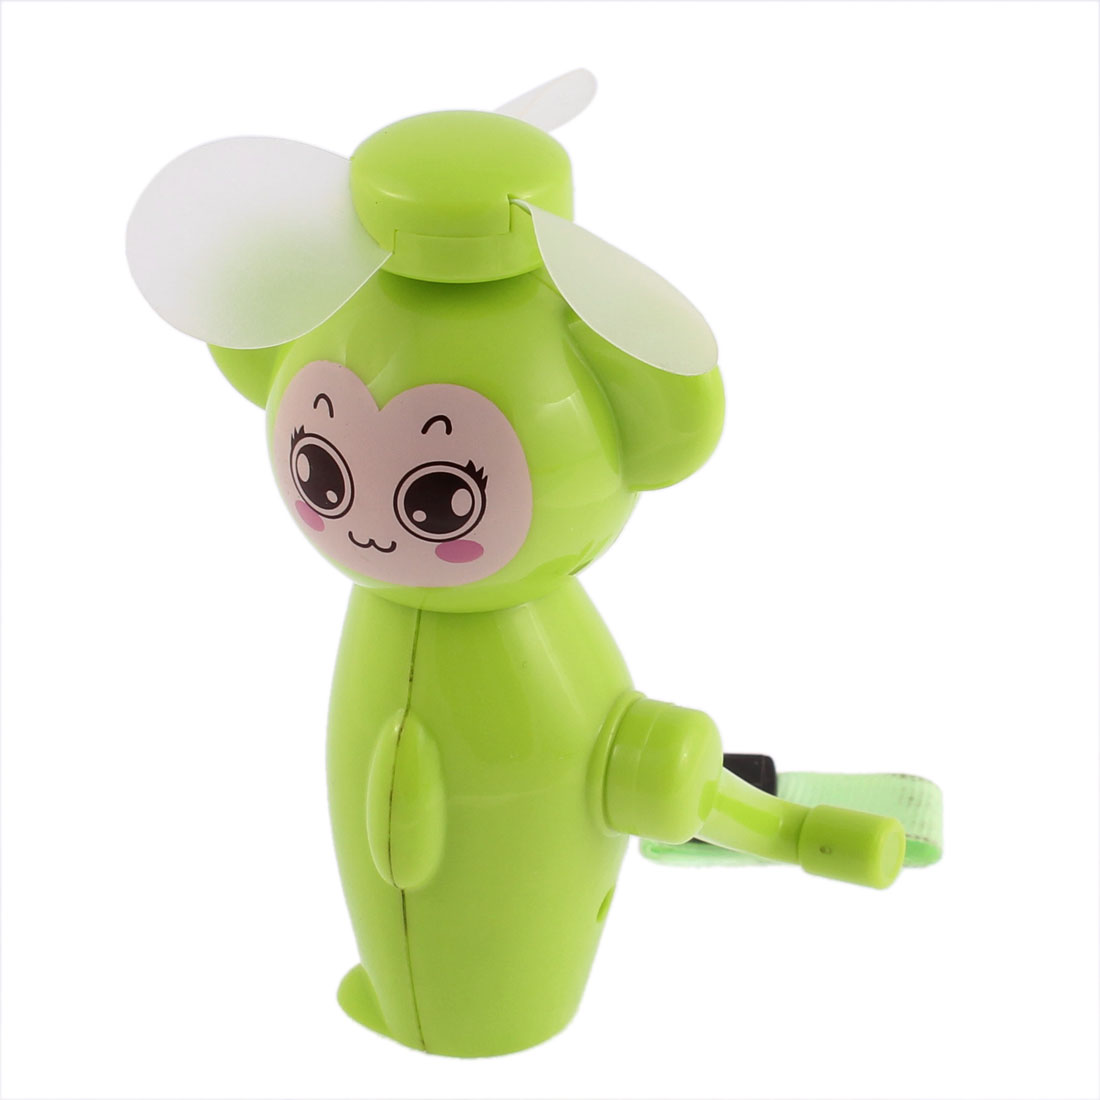 Handheld Plastic Monkey Design Hand Crank Mini Cooling Fan Cooler Green